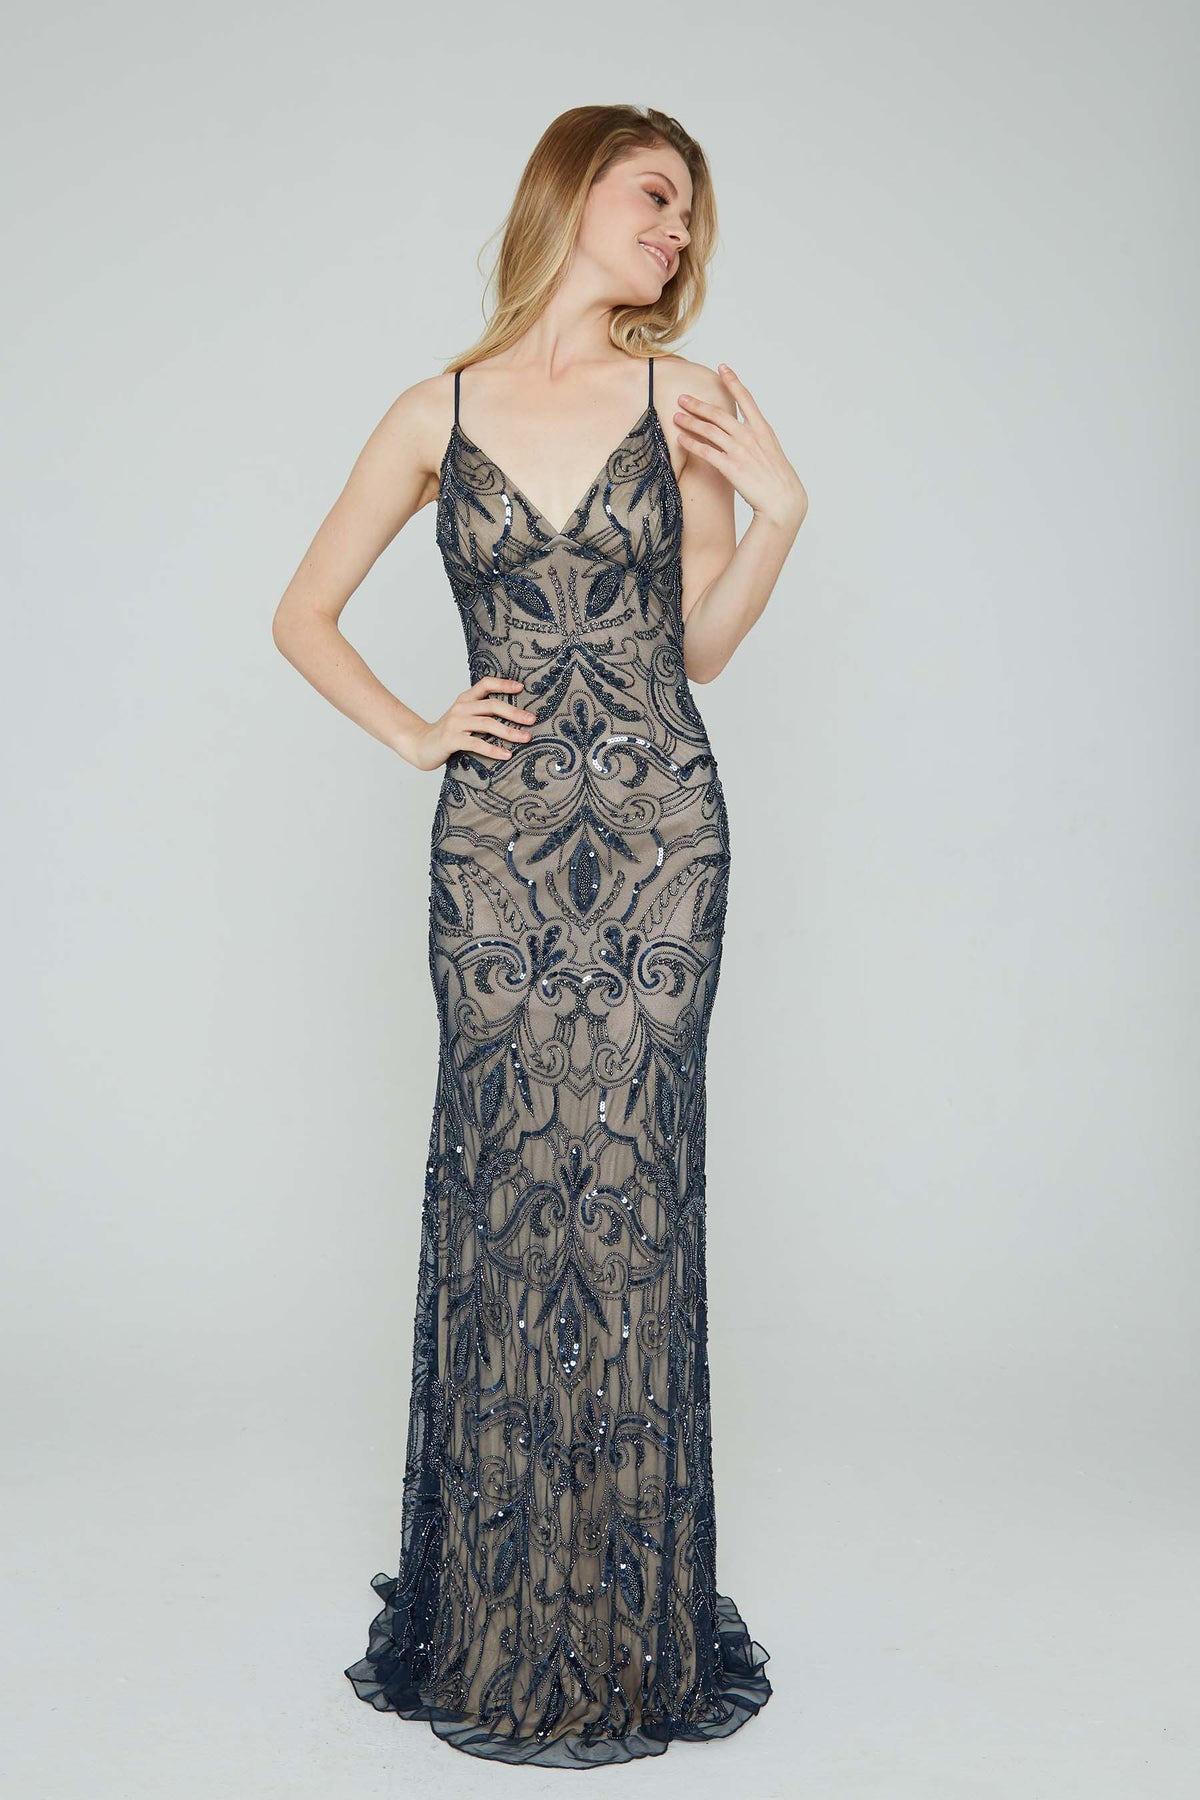 Aleta 196 low back navy sequin prom dress